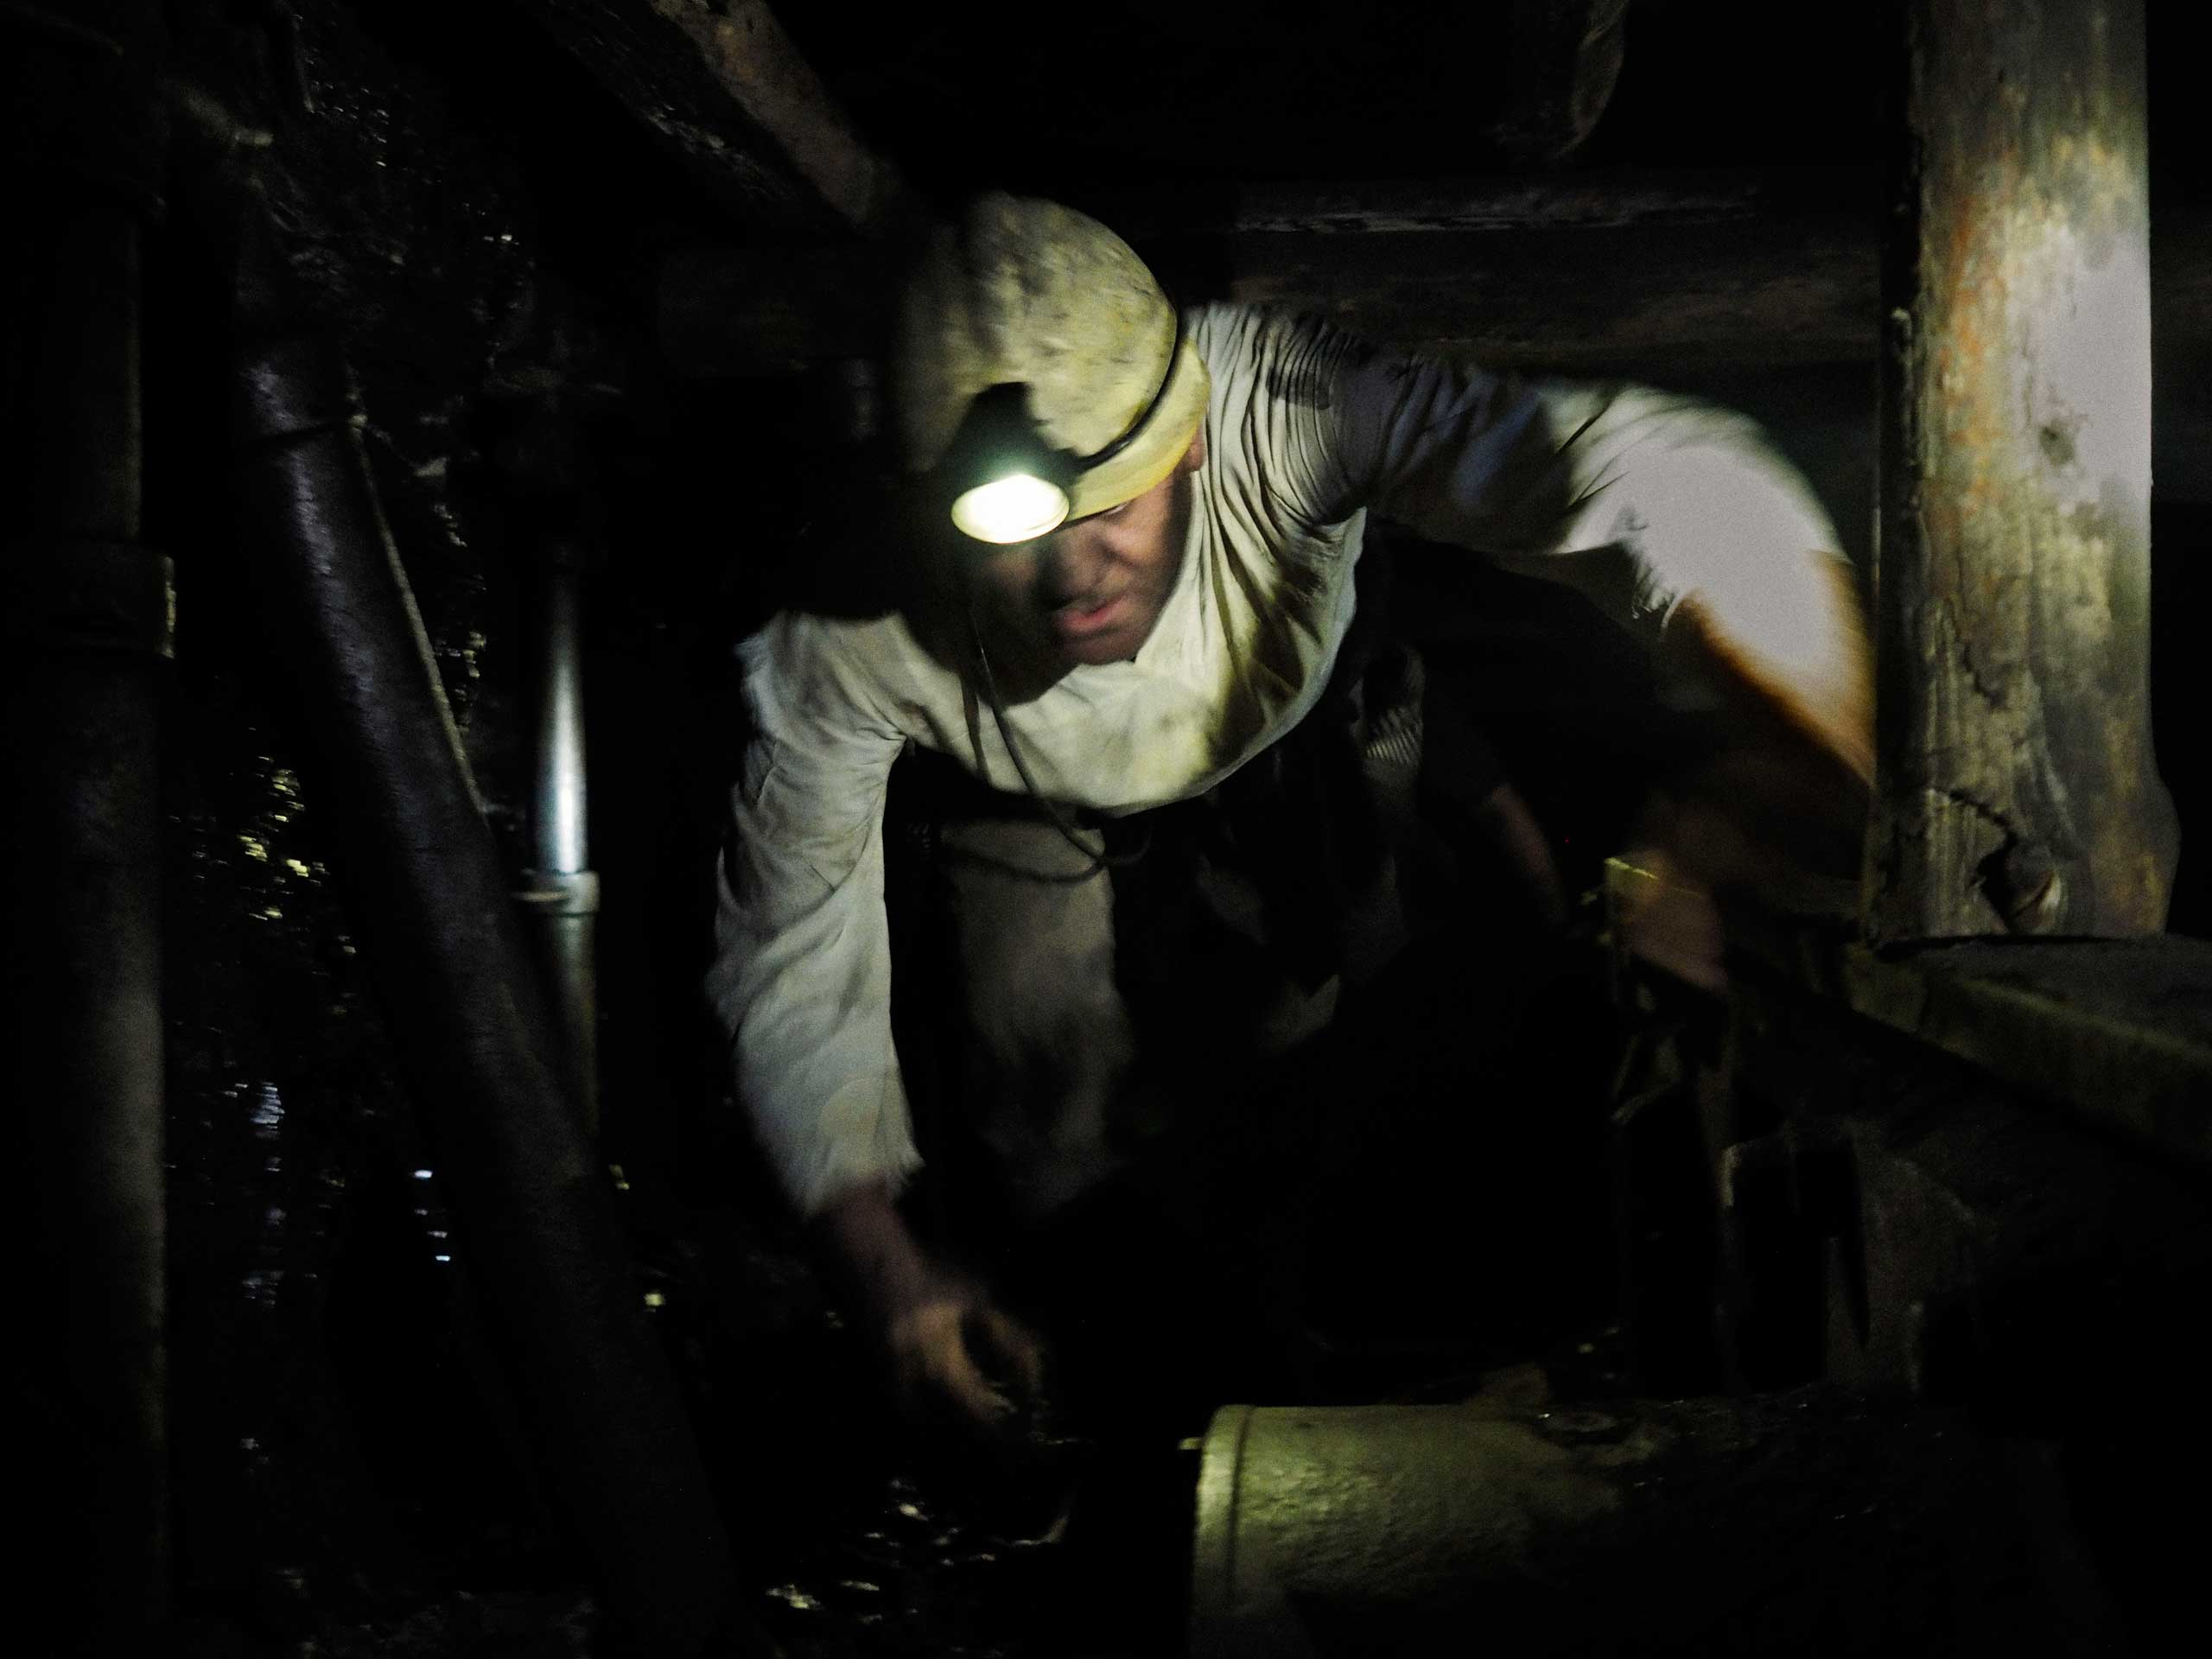 The mine's deputy director while evacuating the deepest shaft. Petrovskyi district, Donetsk, Ukraine. Nov. 22, 2014.